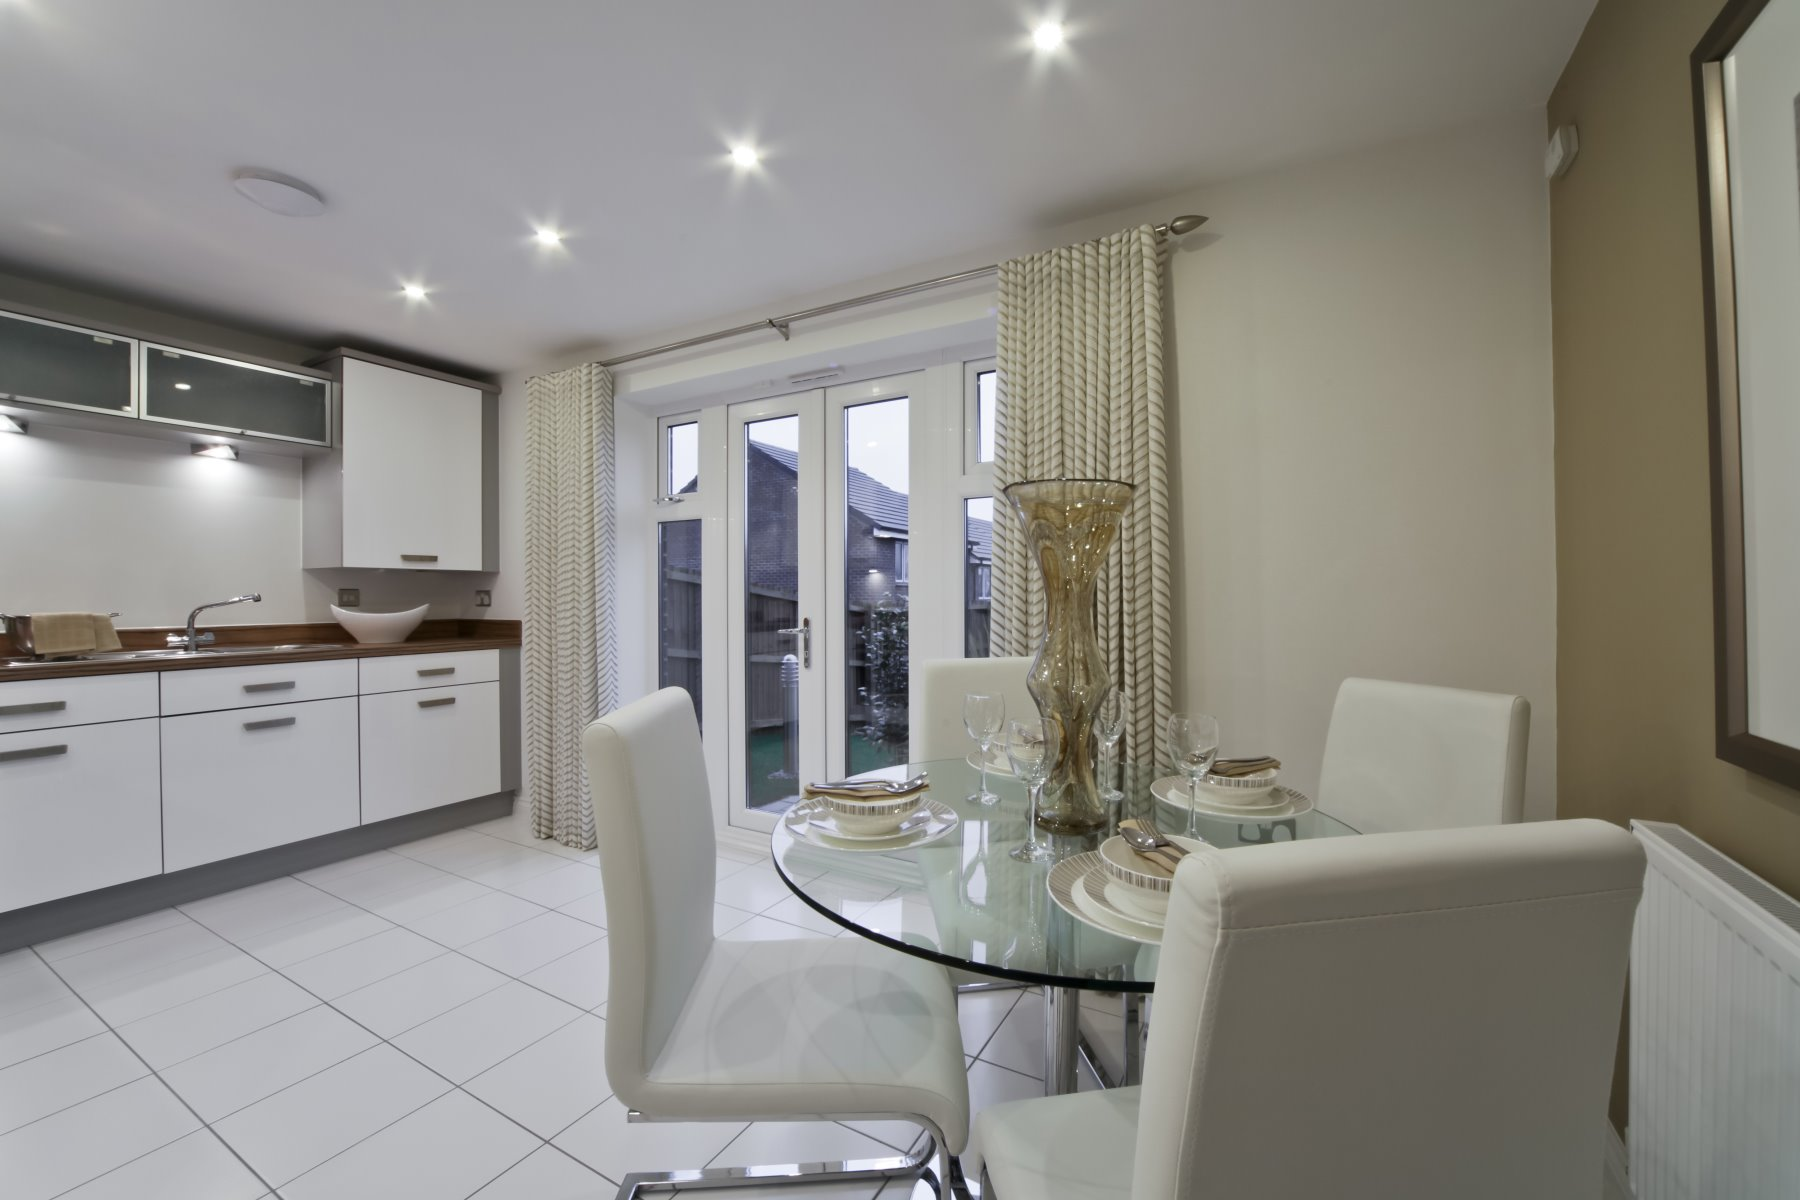 Earlsford Showhome Kitchen/Dining Area - Sandbrook View